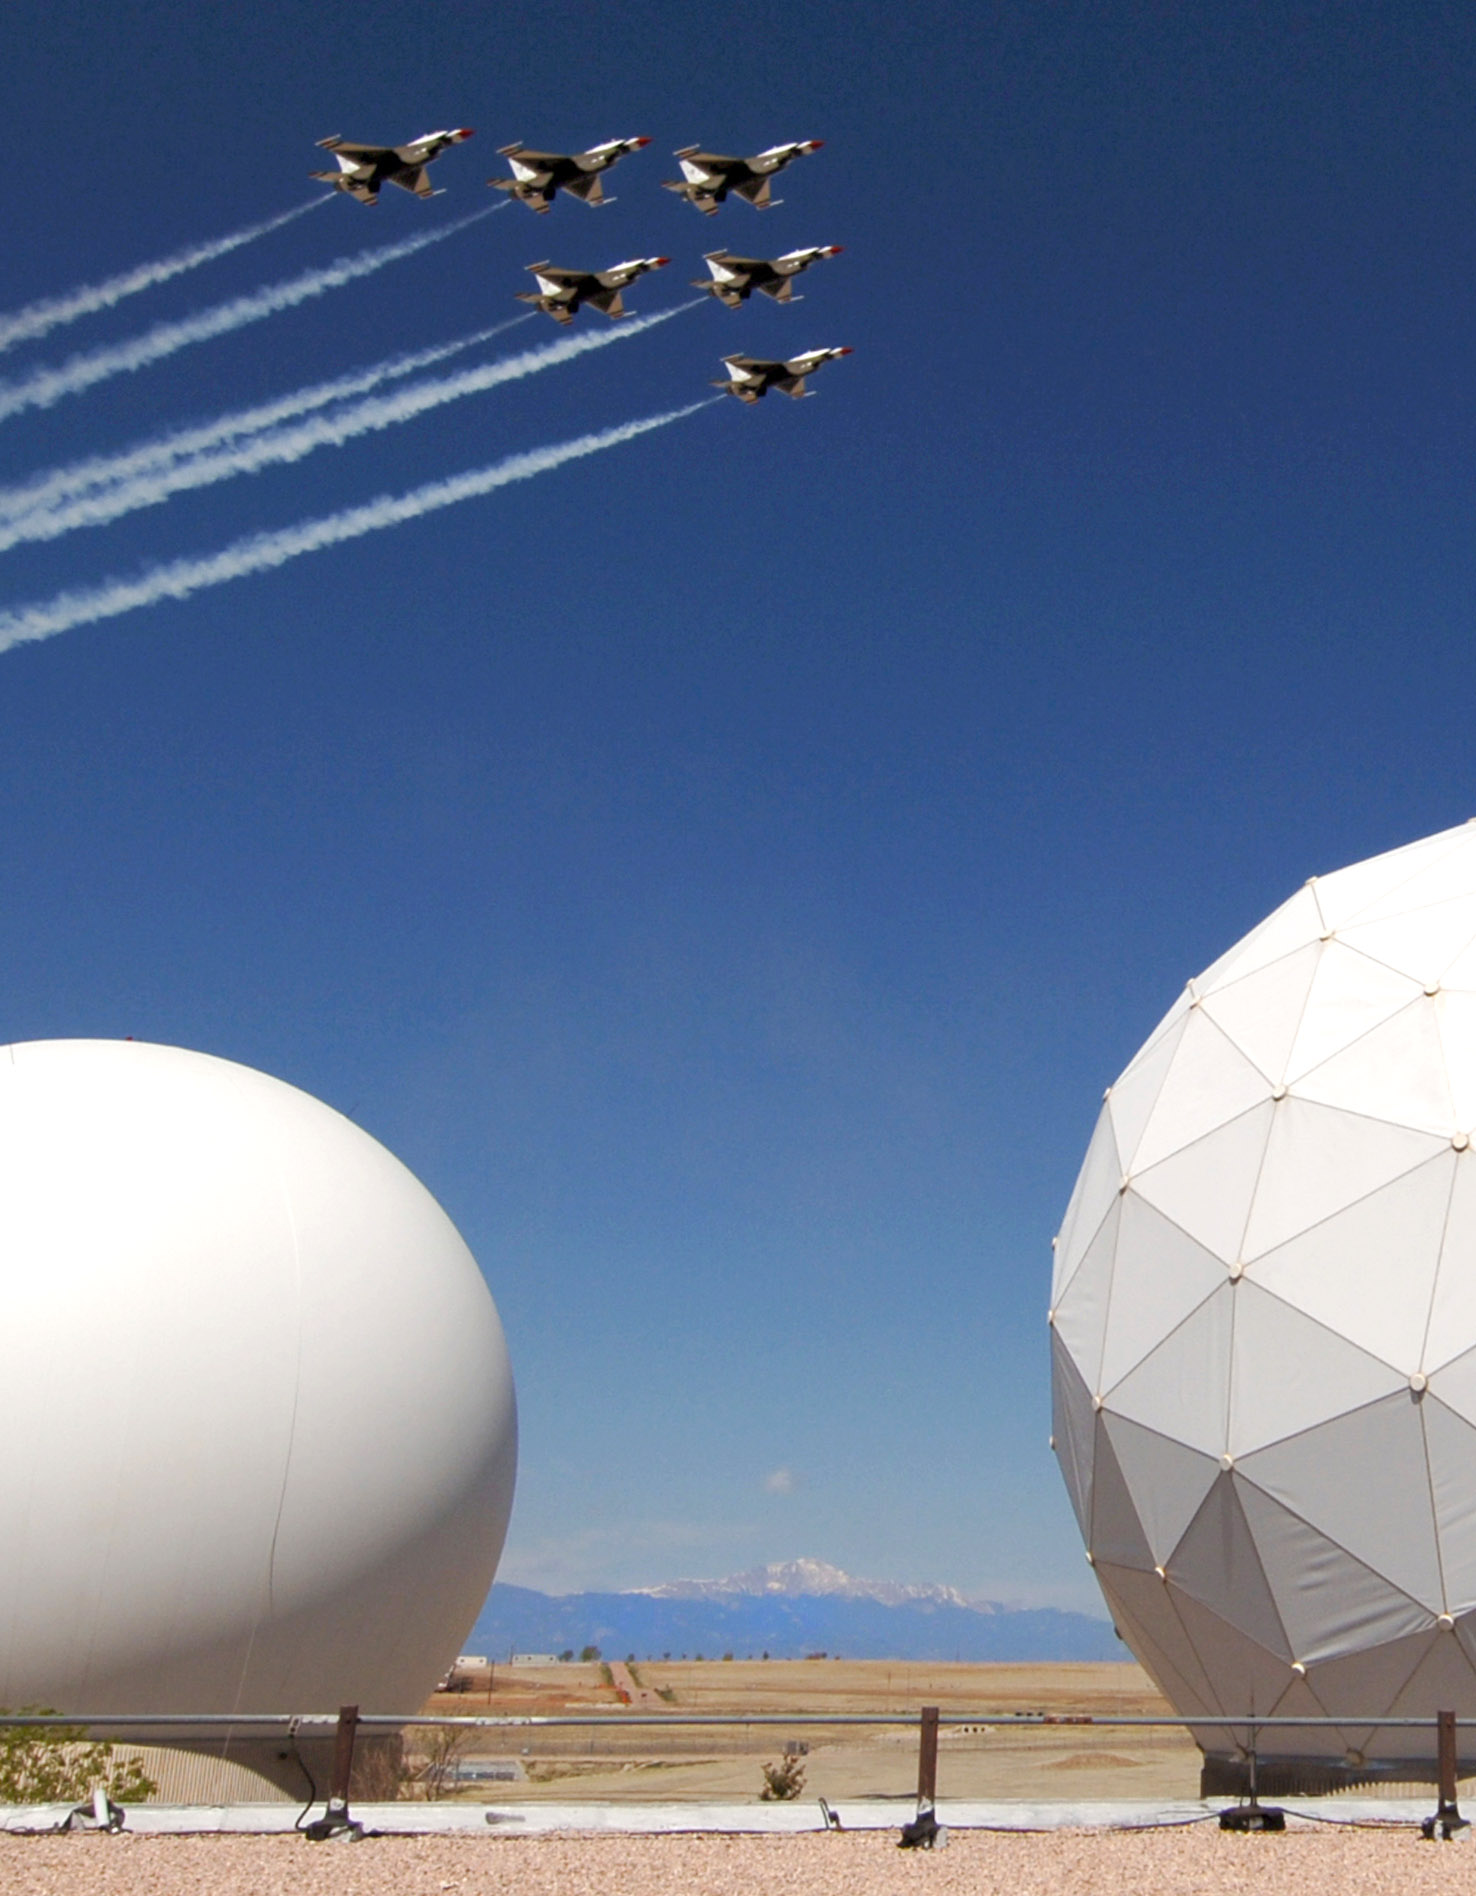 Six military fighter airplanes fly in tight formation over the large, spherical structures containing Schriever's radar arrays. A snow-capped Pike's Peak can be seen in the distance beyond an arid landscape.